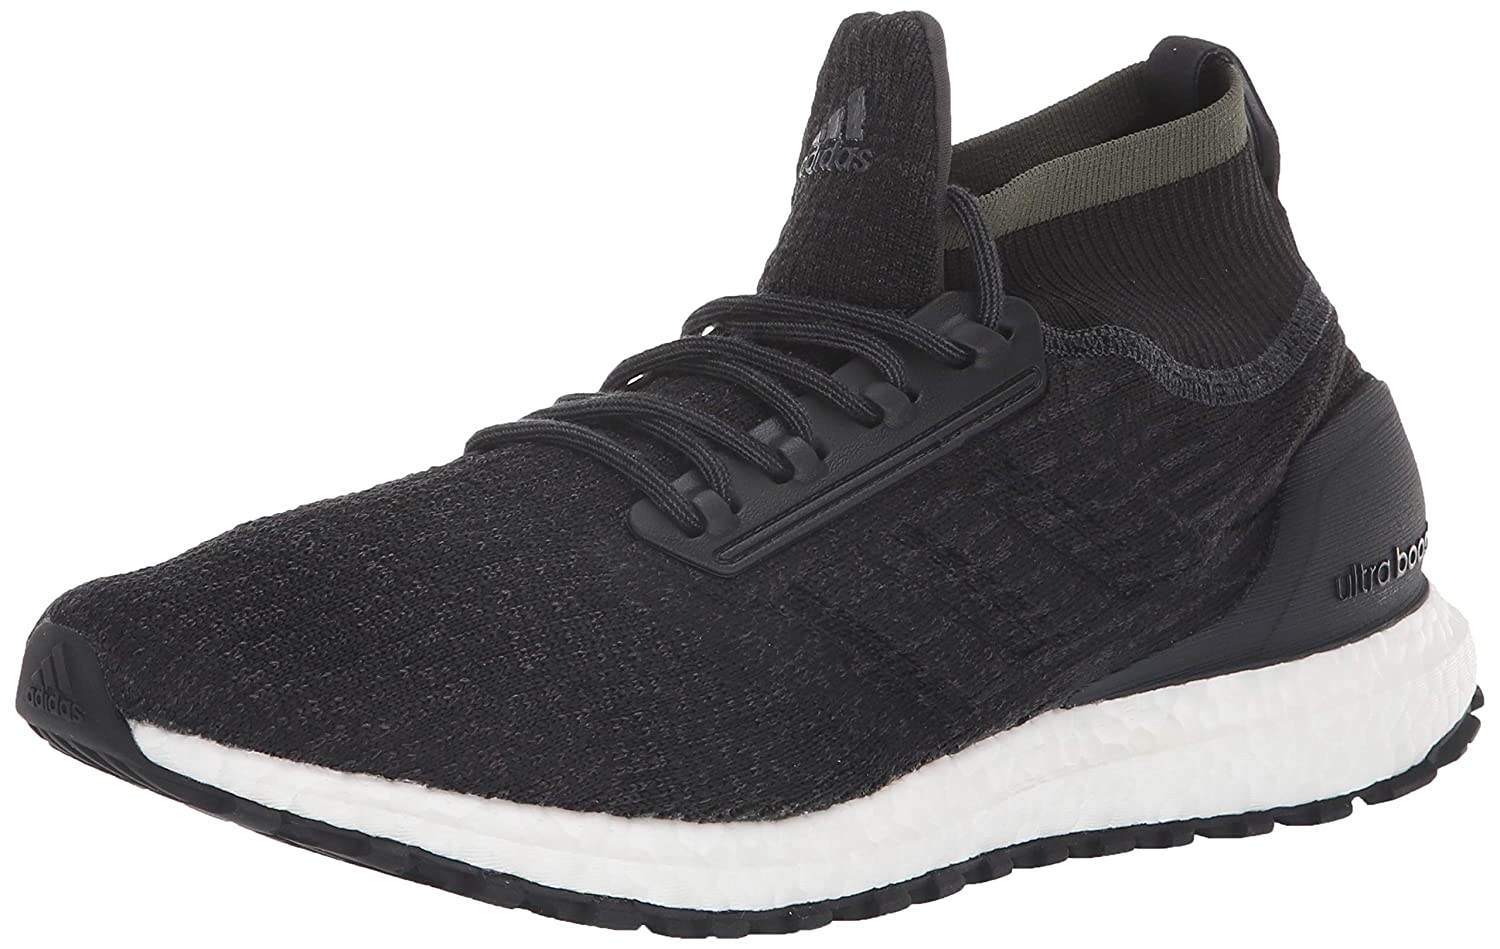 Adidas Mens Ultraboost All Terrain Road Running Sepatu Ultra Boost 30